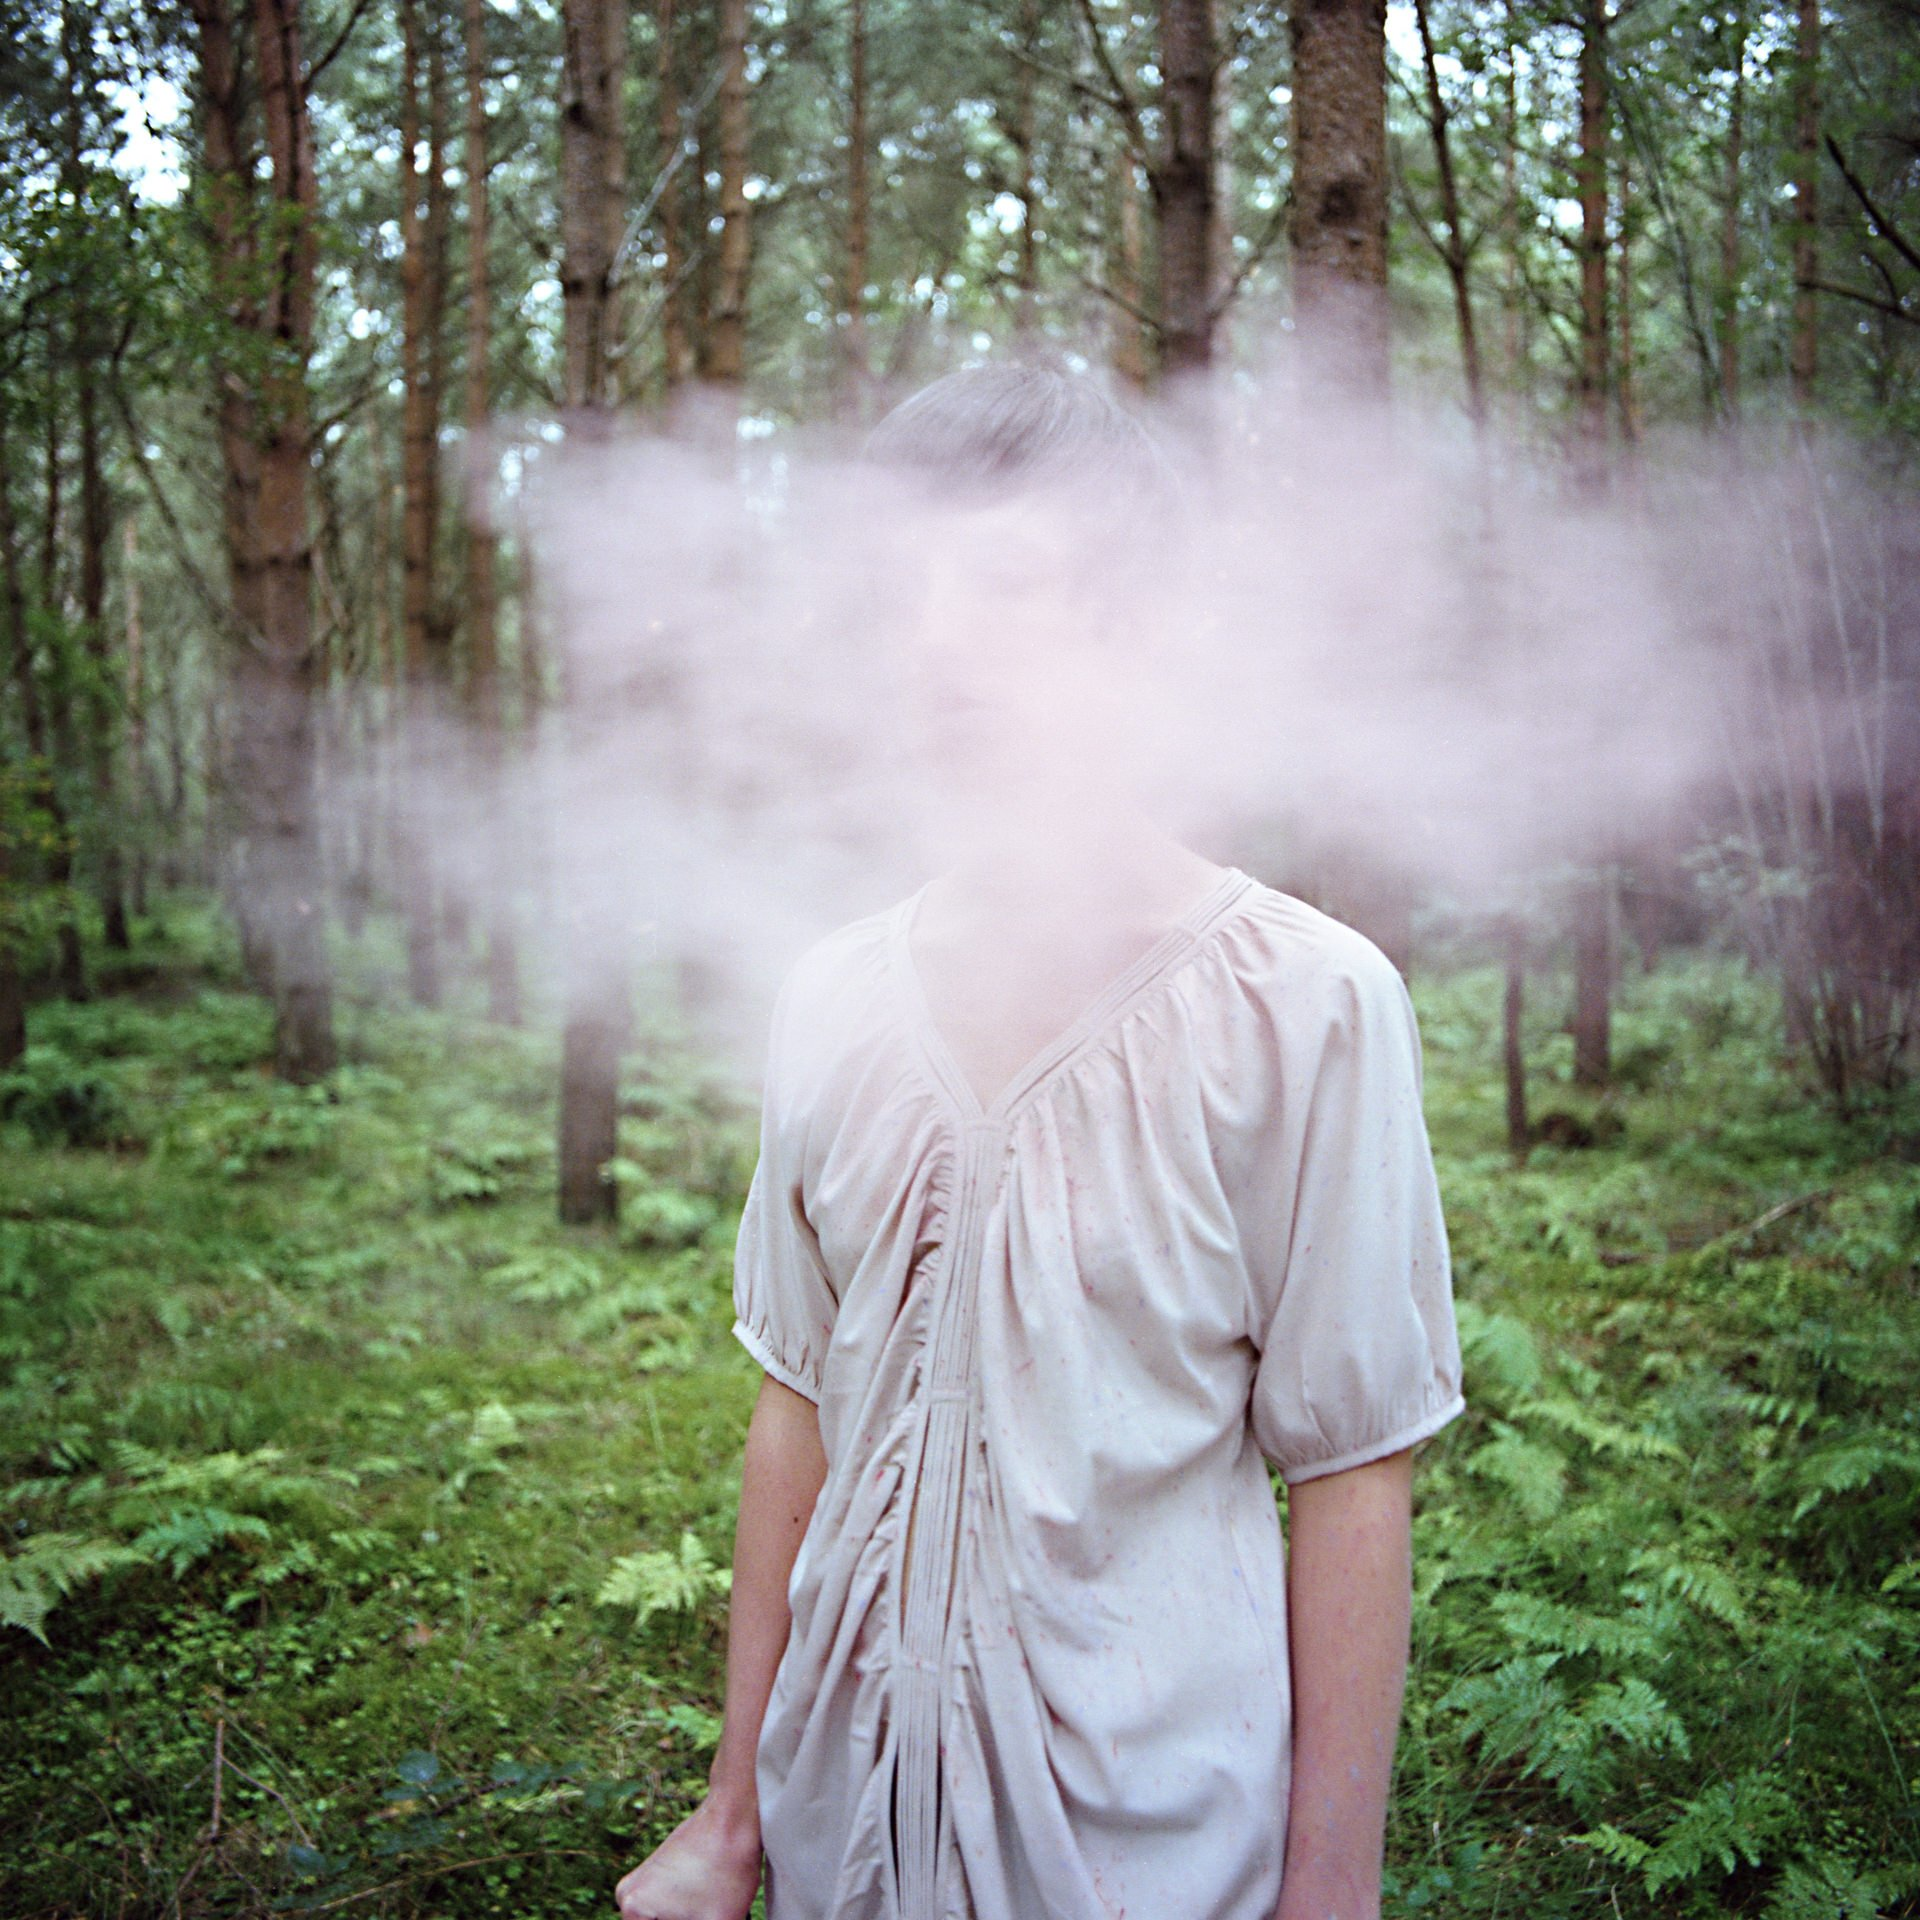 Hannah Laycock pictured in a forest with dust covering her face for the Perceiving Identity project about Multiple Sclerosis